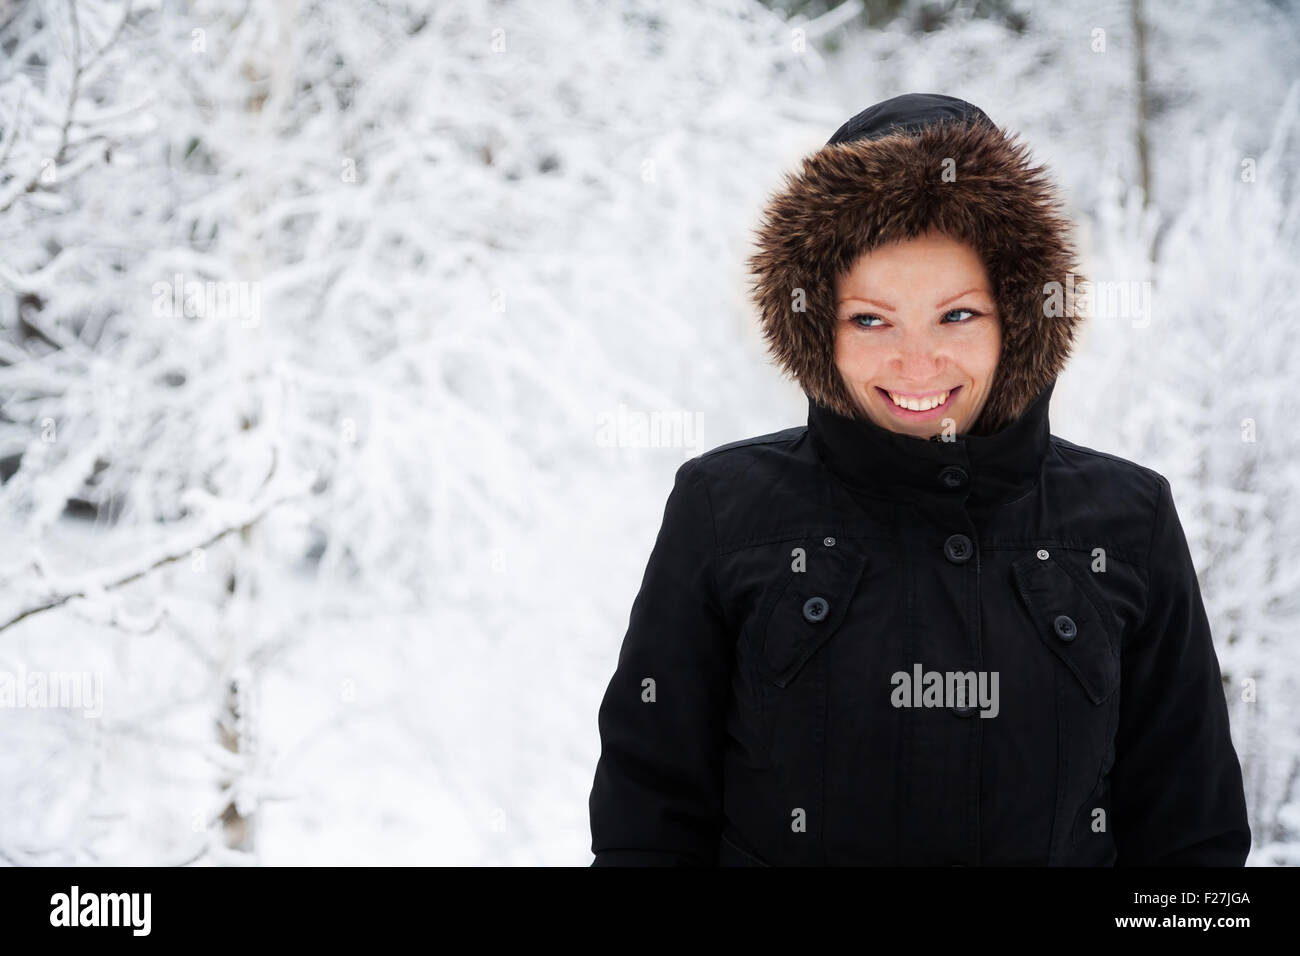 Cheerful Caucasian Young Woman in Snowy Weather in park with snow-covered trees, Copy Space - Stock Image